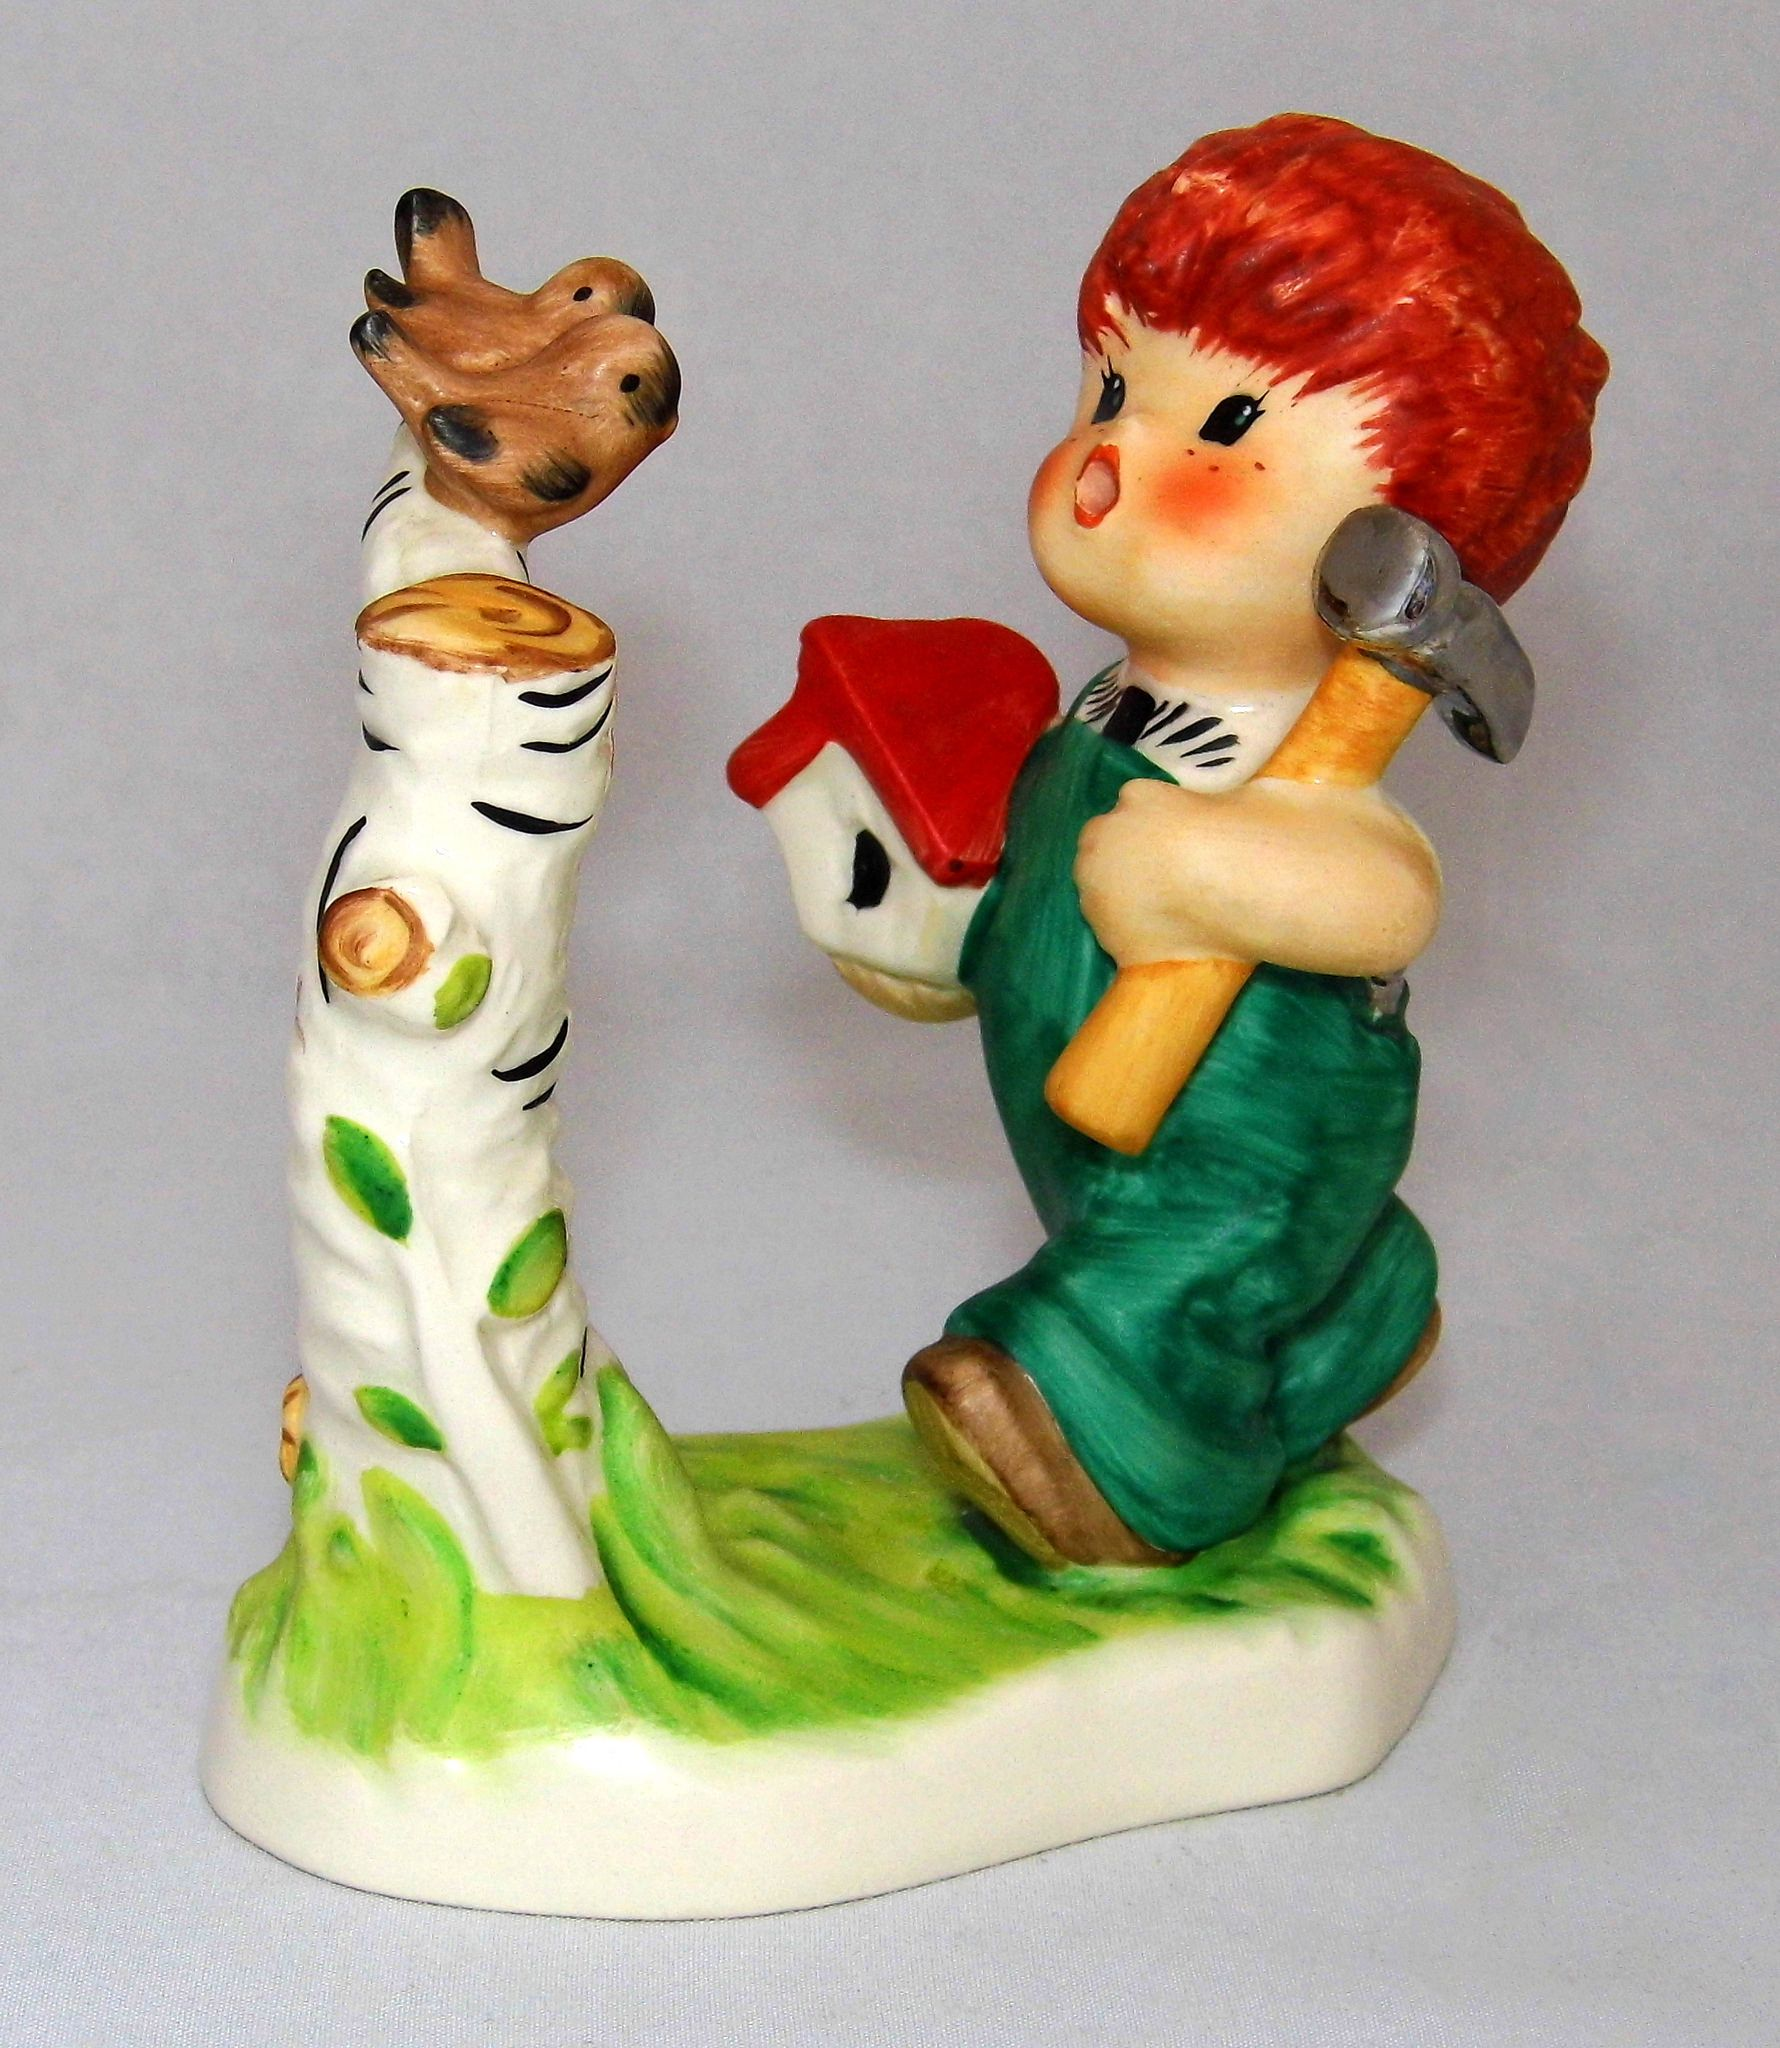 https://flic.kr/p/NfL7Zc | Vintage Goebel Red Heads Figurine By Charlot Byj Titled Springtime, 4.25 Inches High, Made In West Germany